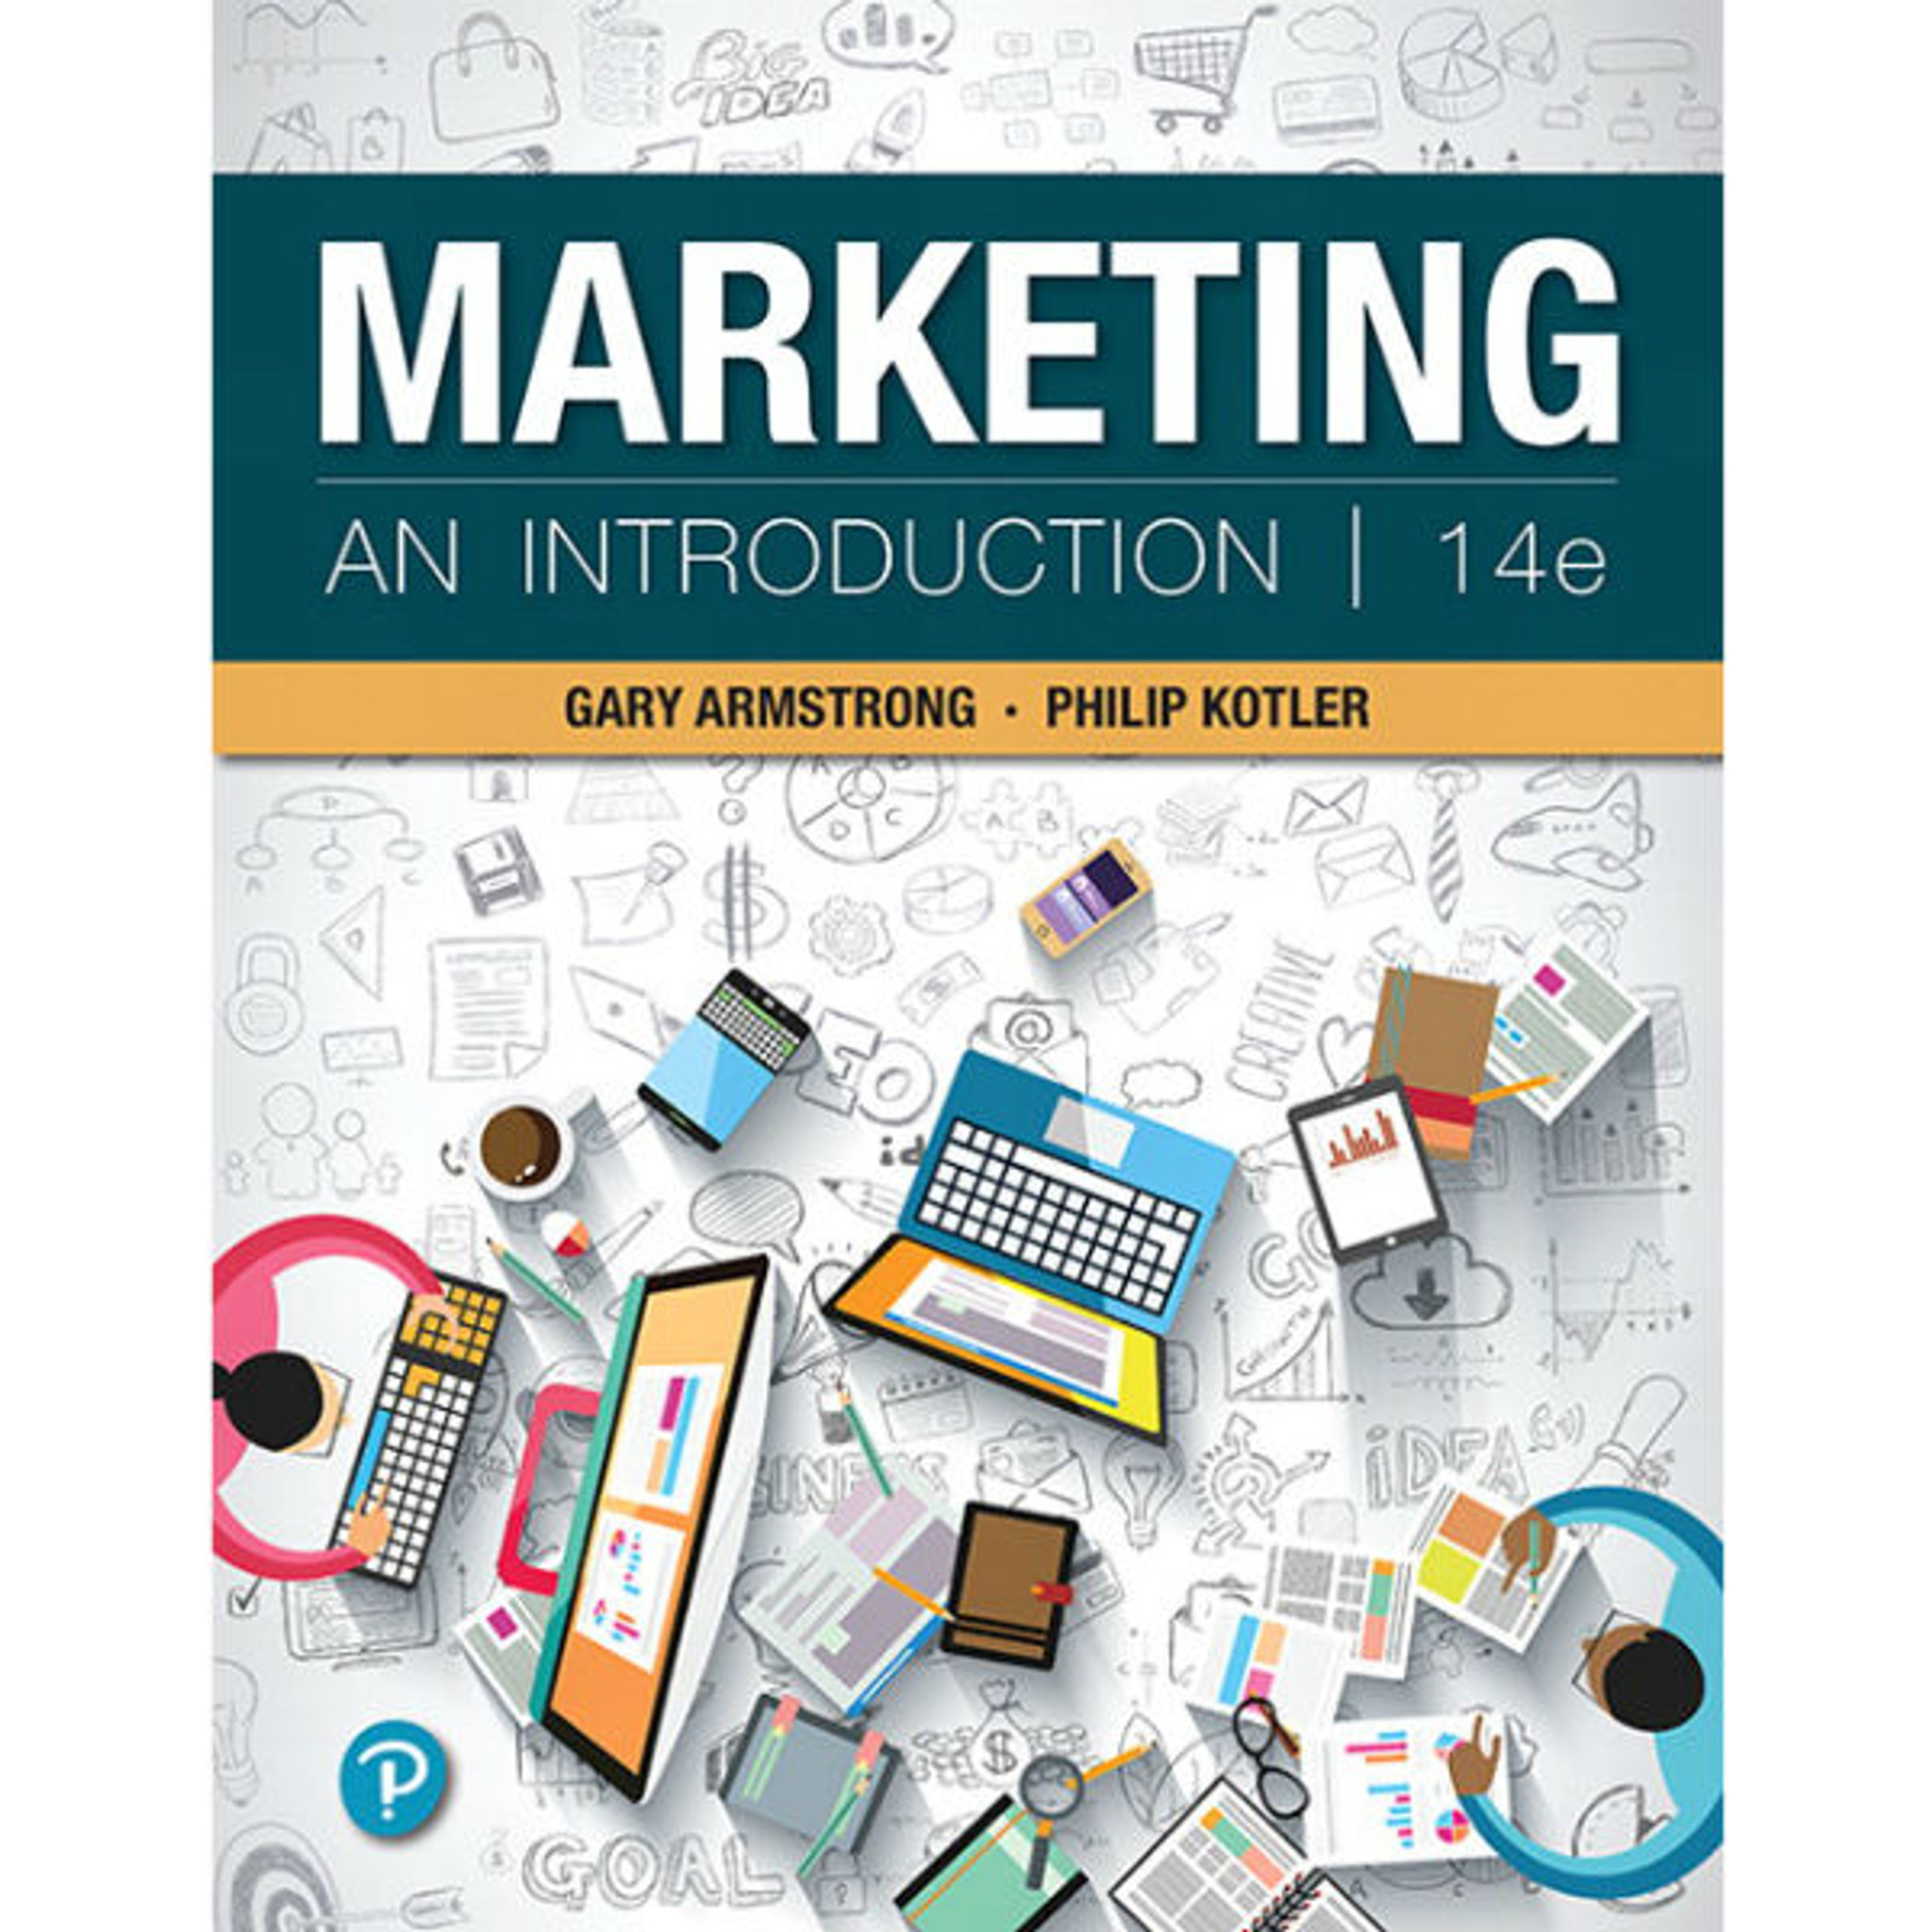 Marketing An Introduction 14th Edition Gary Armstrong Philip Kotler 9780135192122